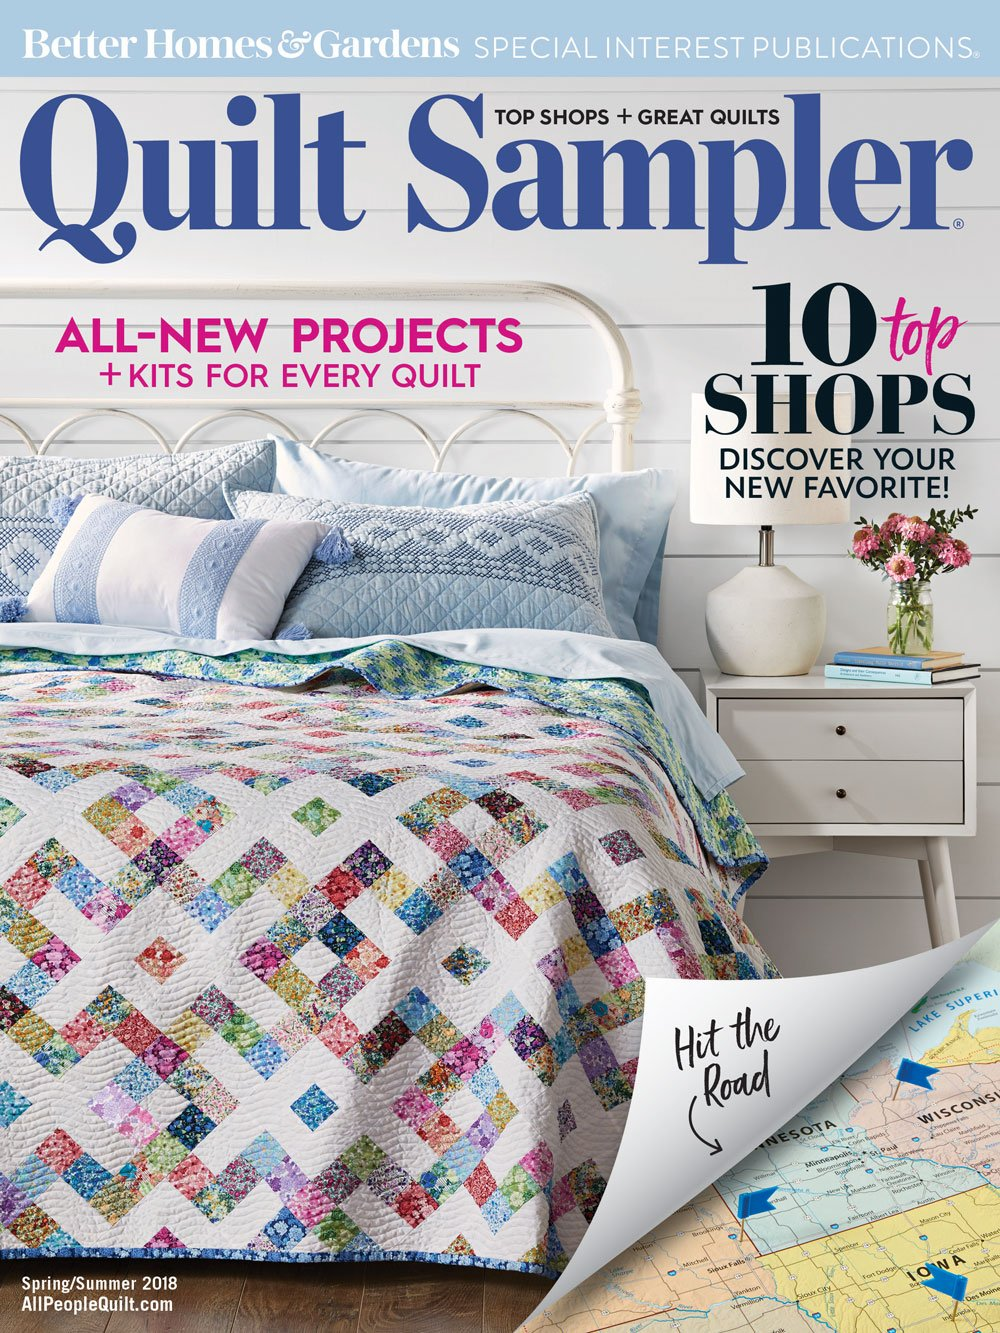 Top Shop Better Homes & Gardens Quilt Sampler Spring/Summer 2018